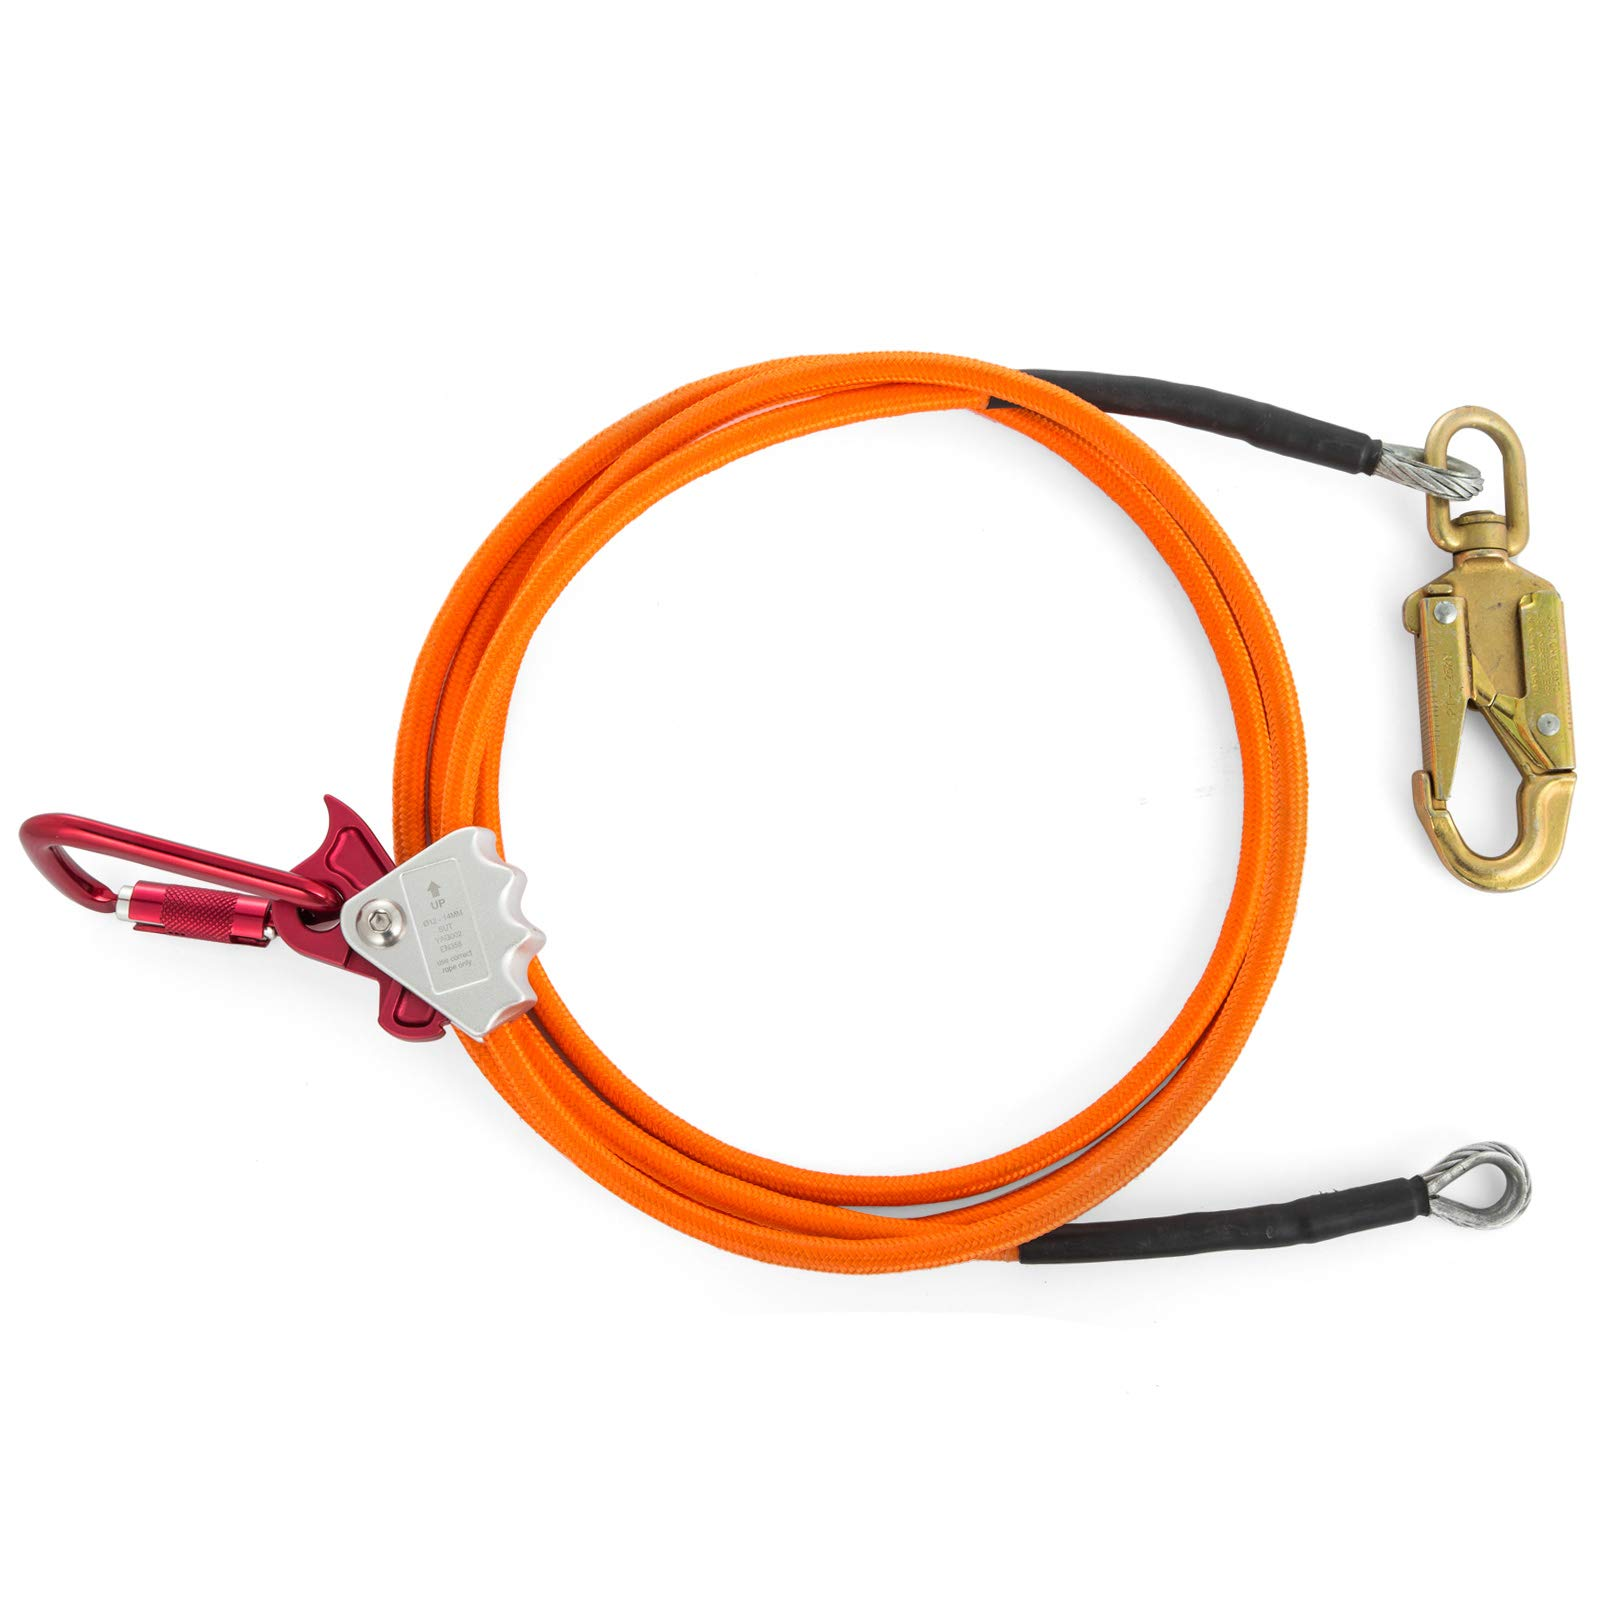 Happybuy Steel Wire Core Flip Line Kit 1/2'' X 8' Wire Core Flipline with Triple Lock Carabiner and Steel Swivel Snap Wire Core Flipline System for Arborists Climbers Tree Climbers (1/2'' X 8') by Happybuy (Image #2)